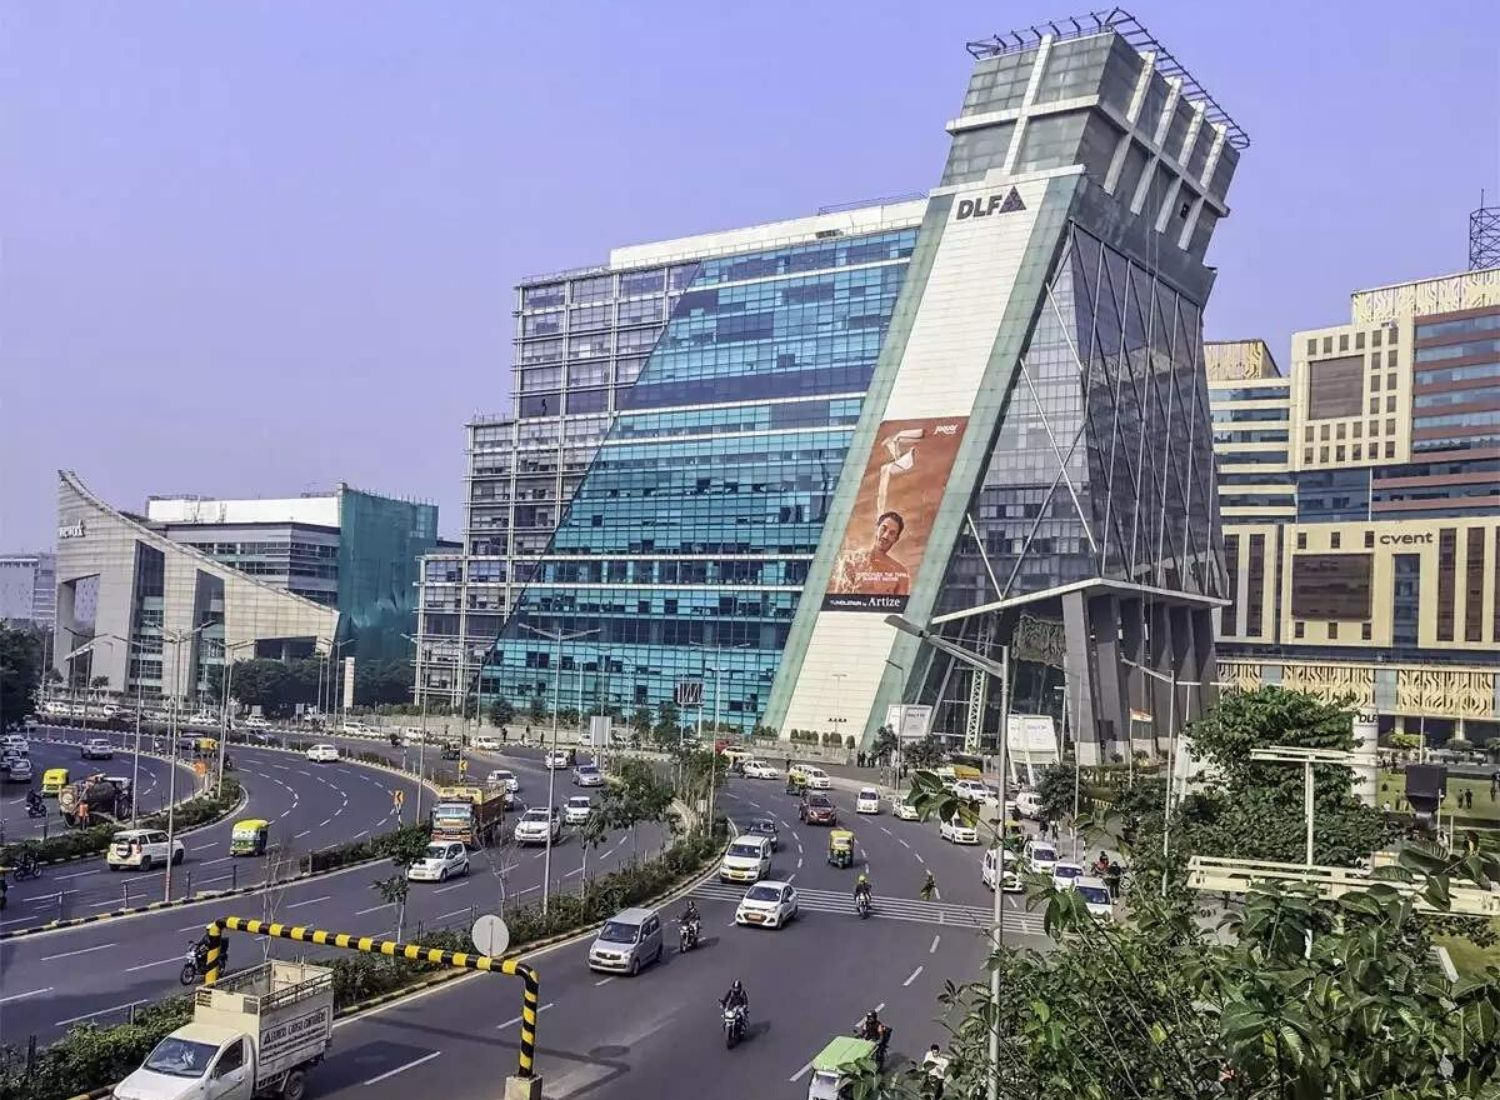 DLF Gurgaon Packers and Movers in DLF Phase 3 - LogisticMart